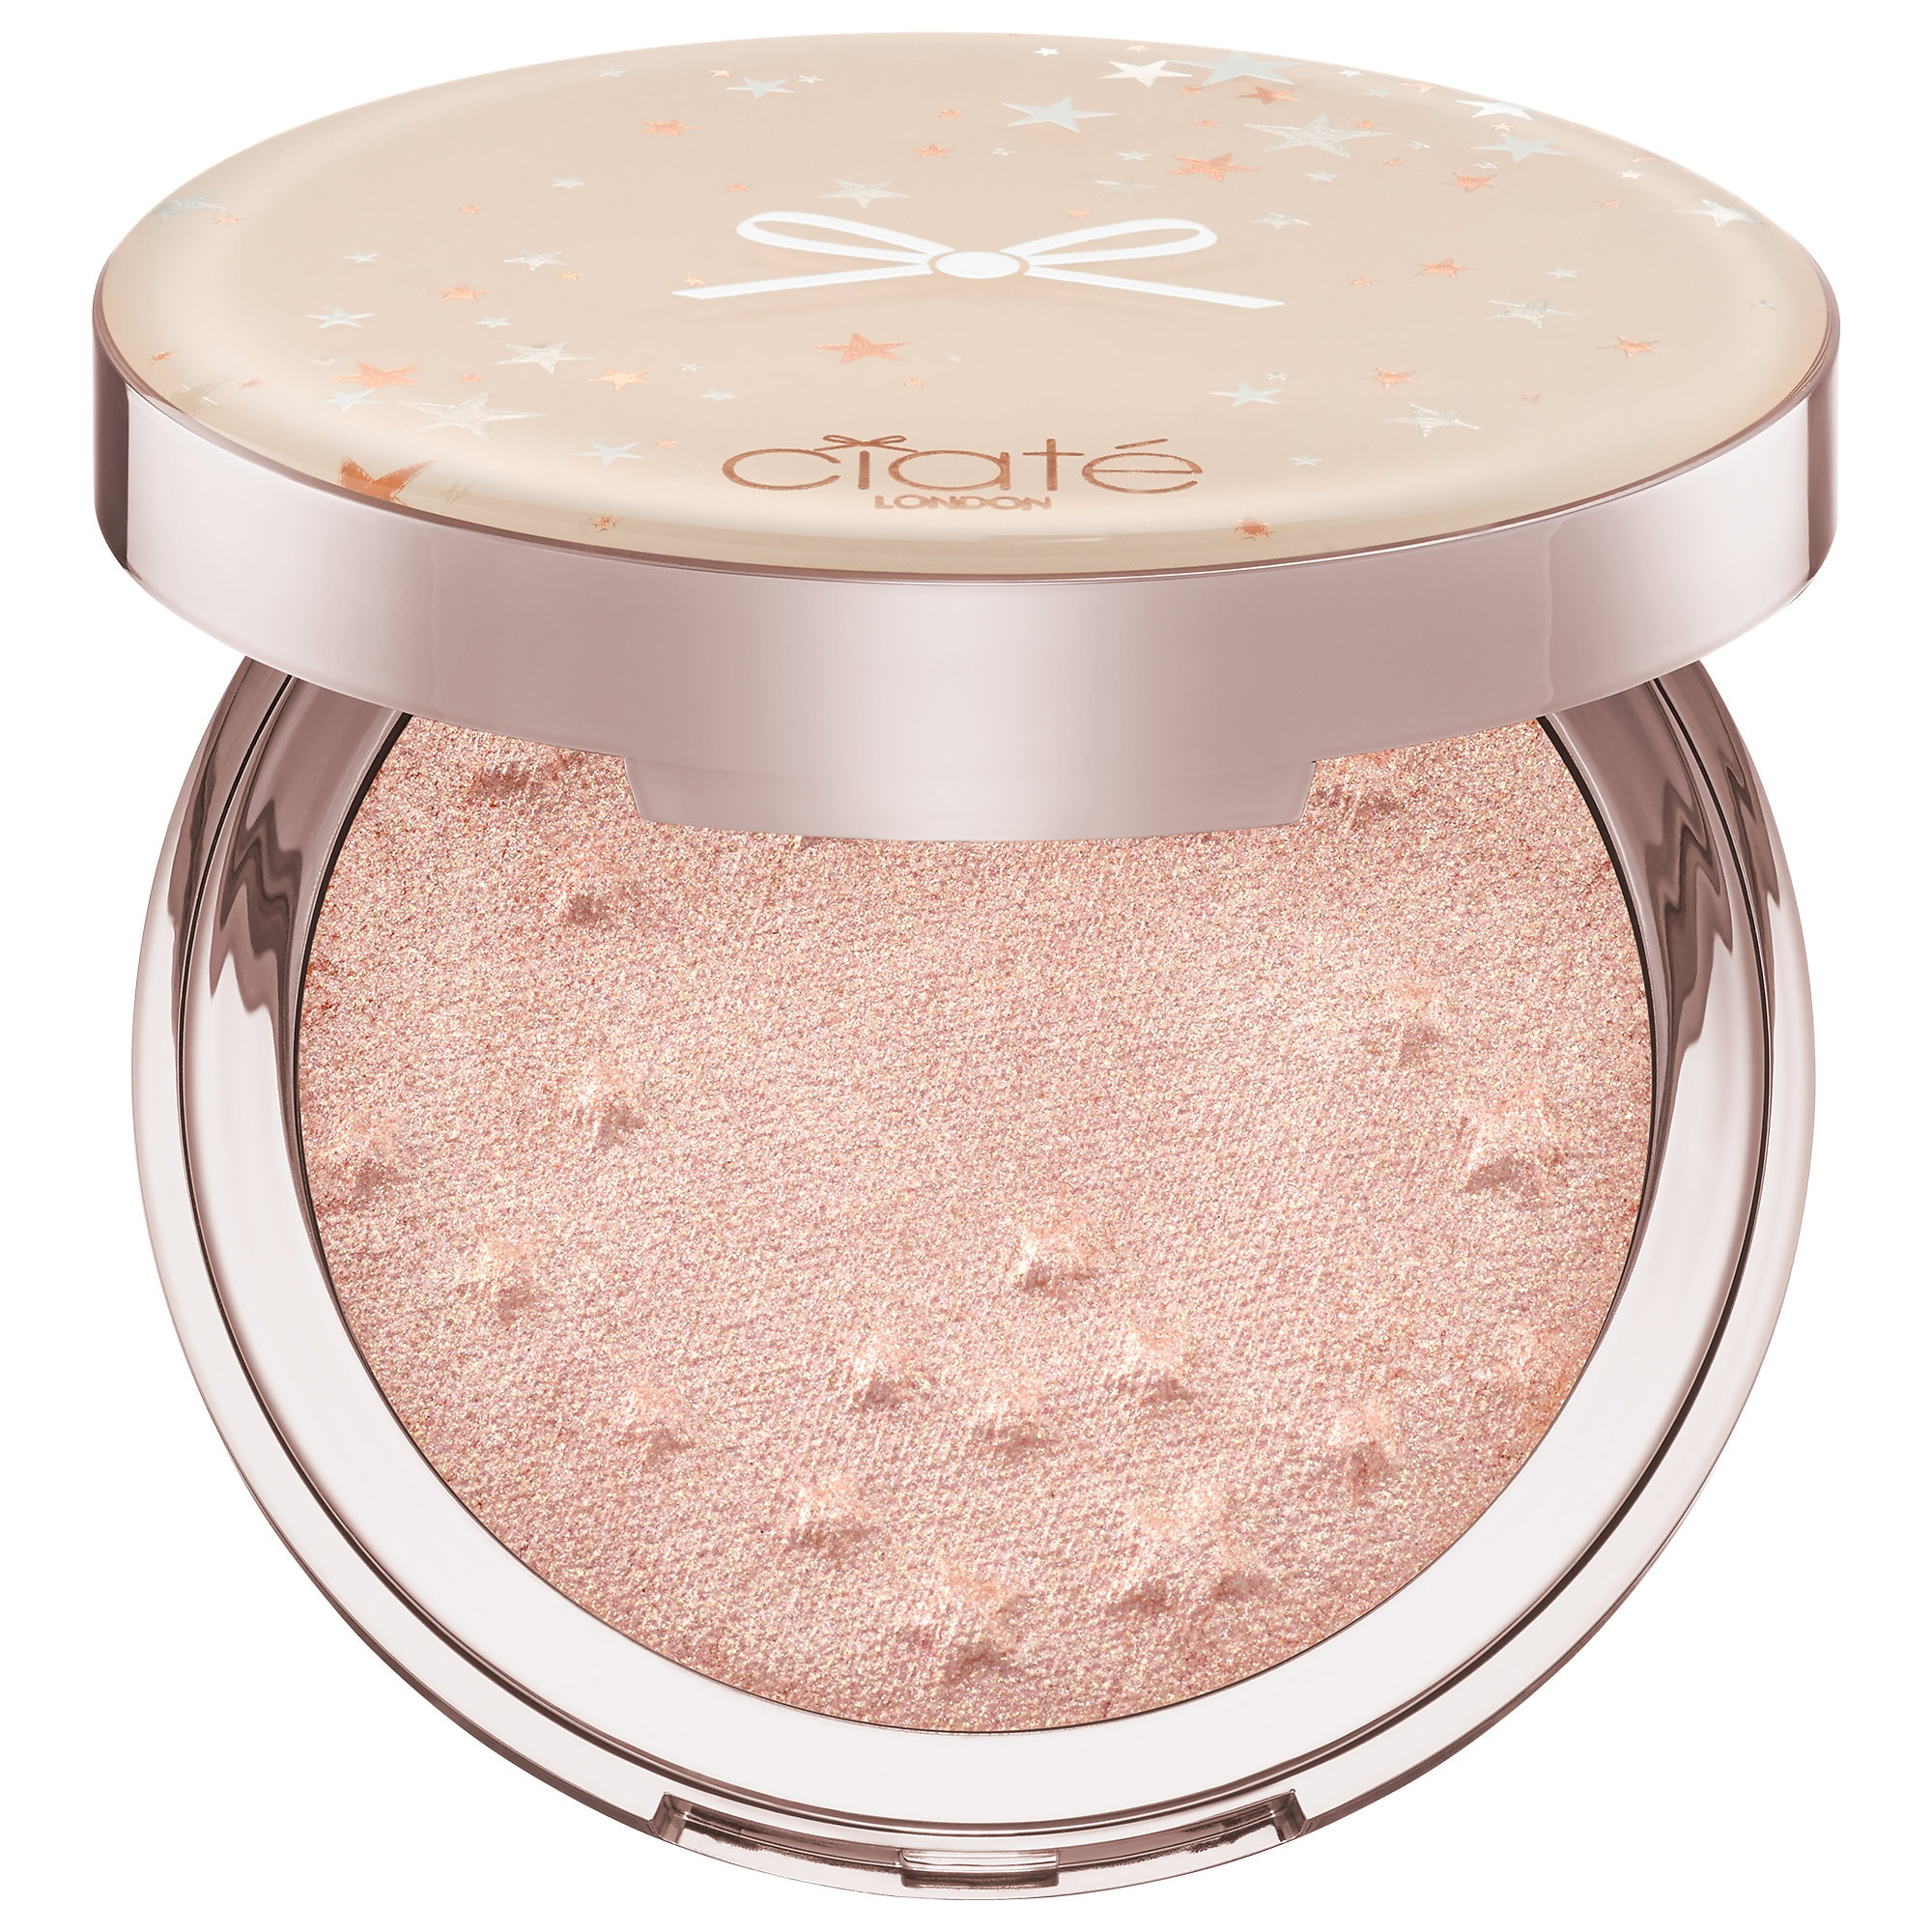 Ciate London - Glow-To Highlighter